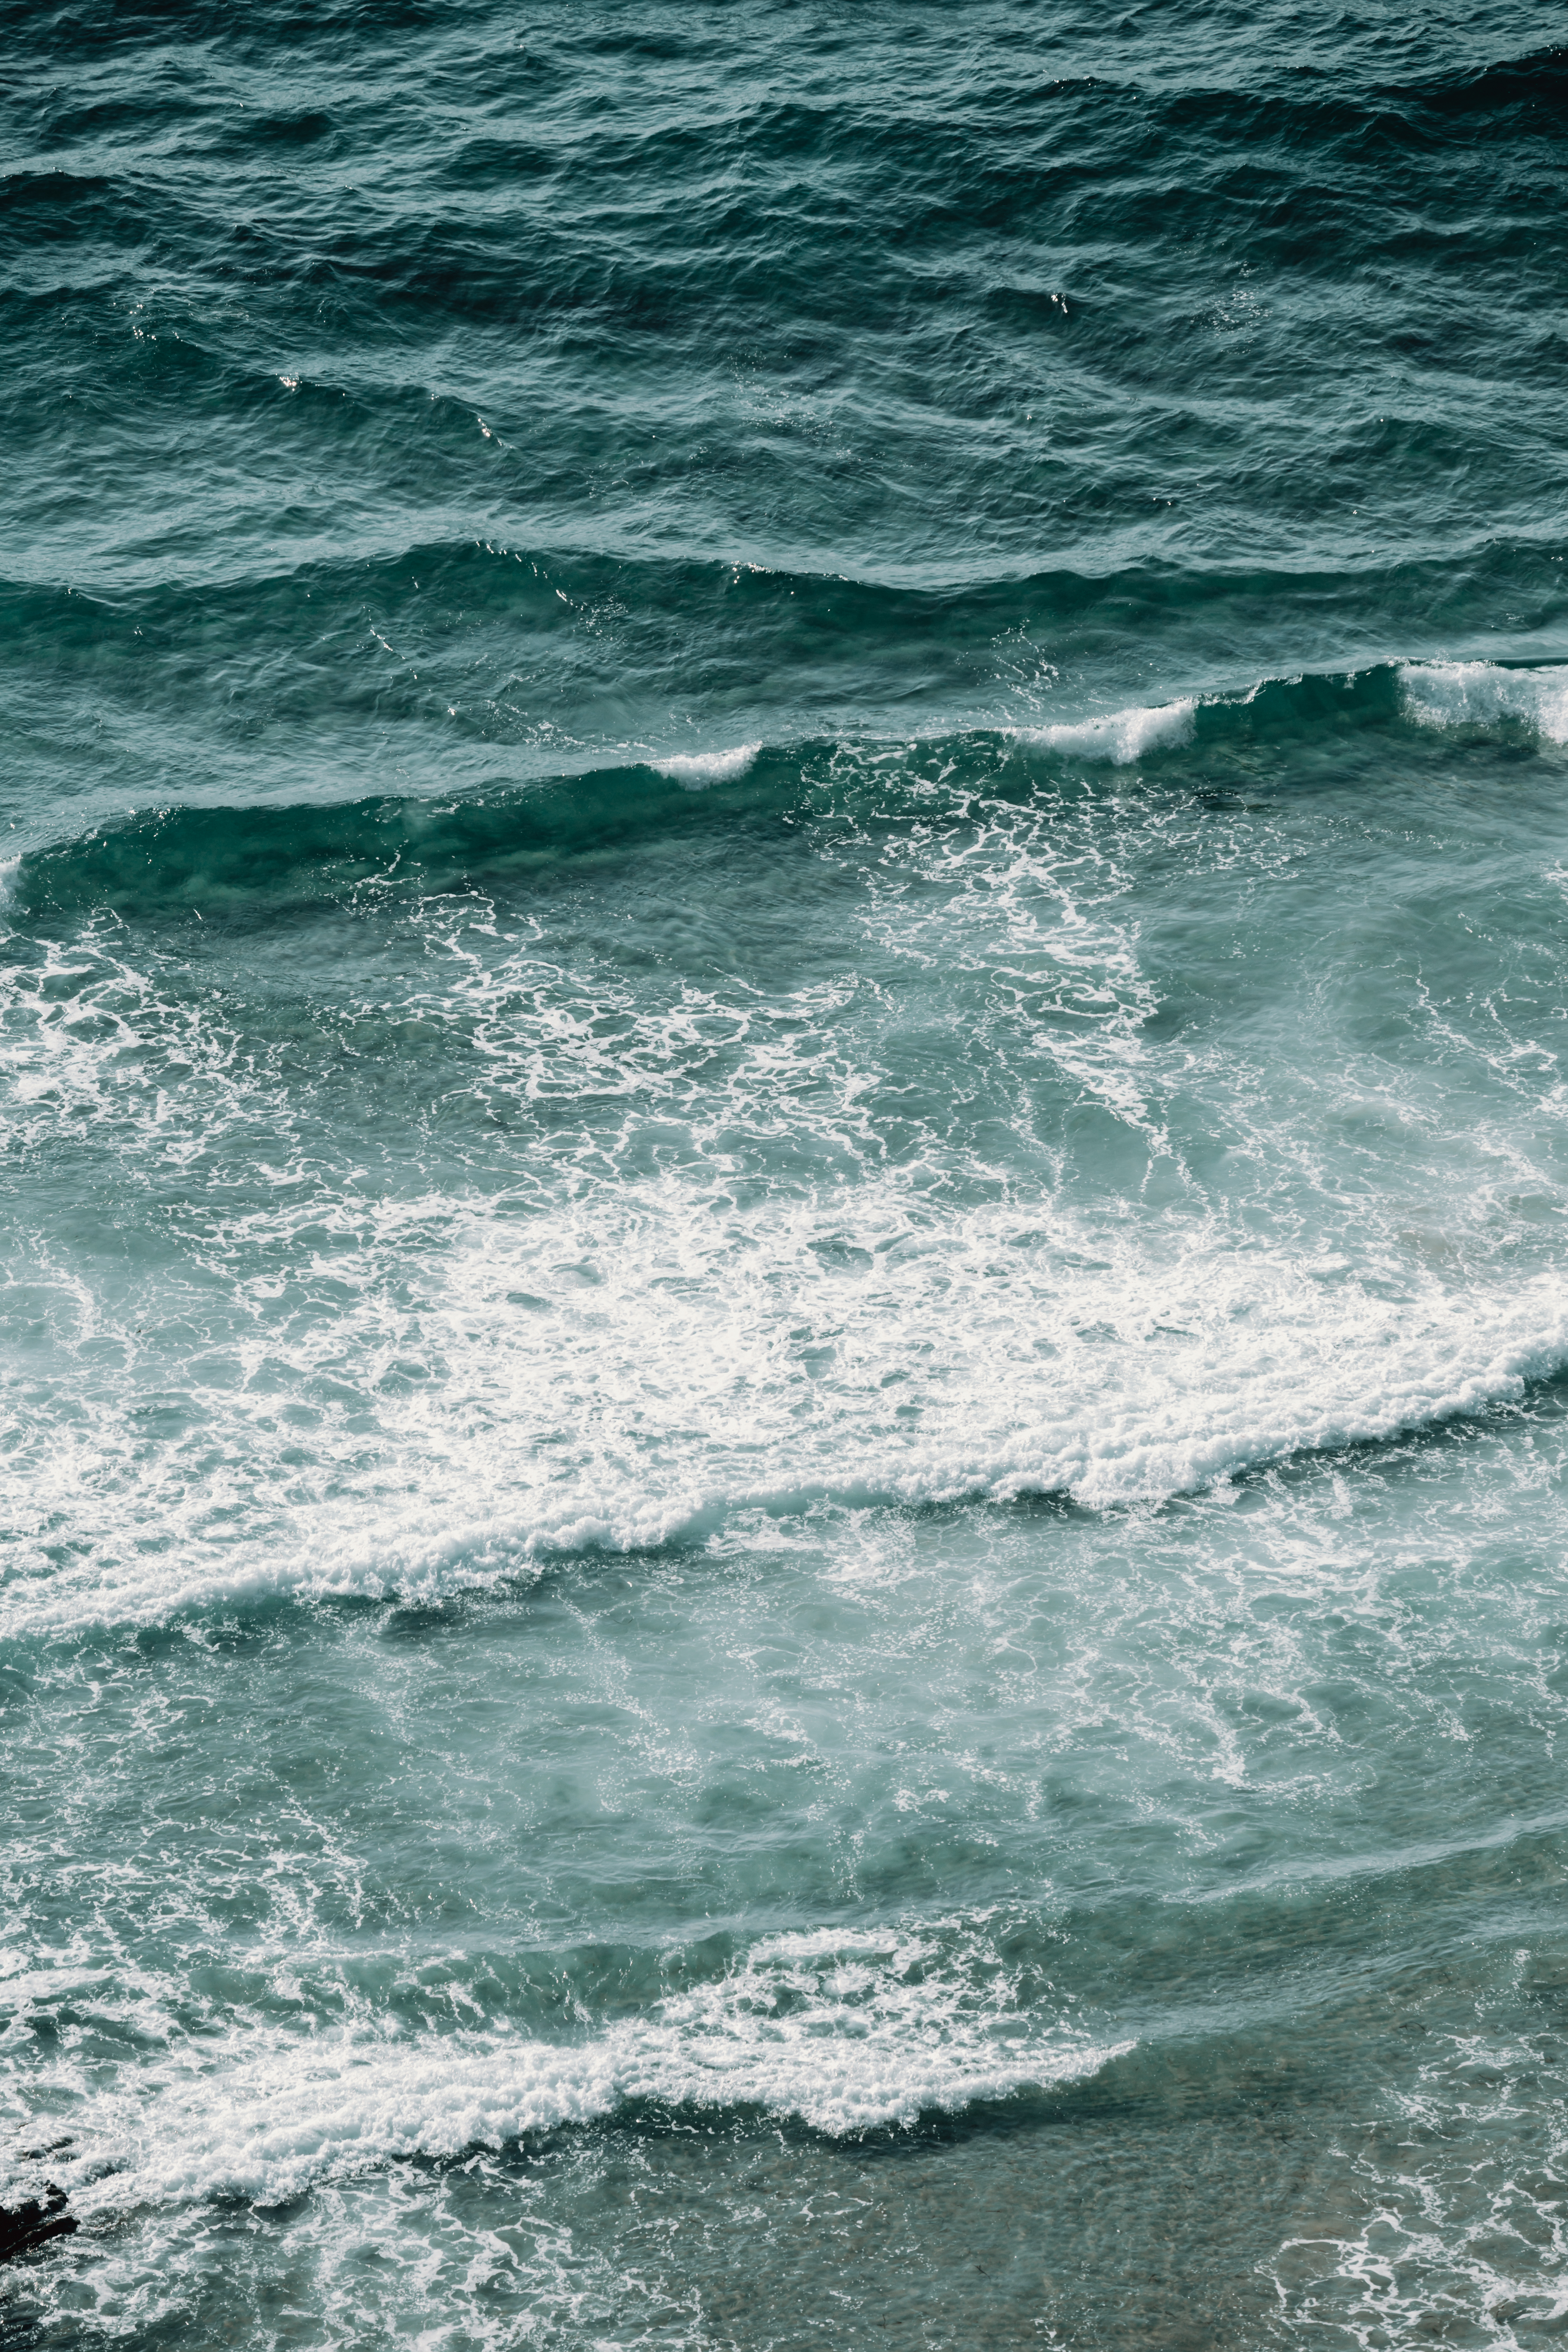 Aerial view of the waves